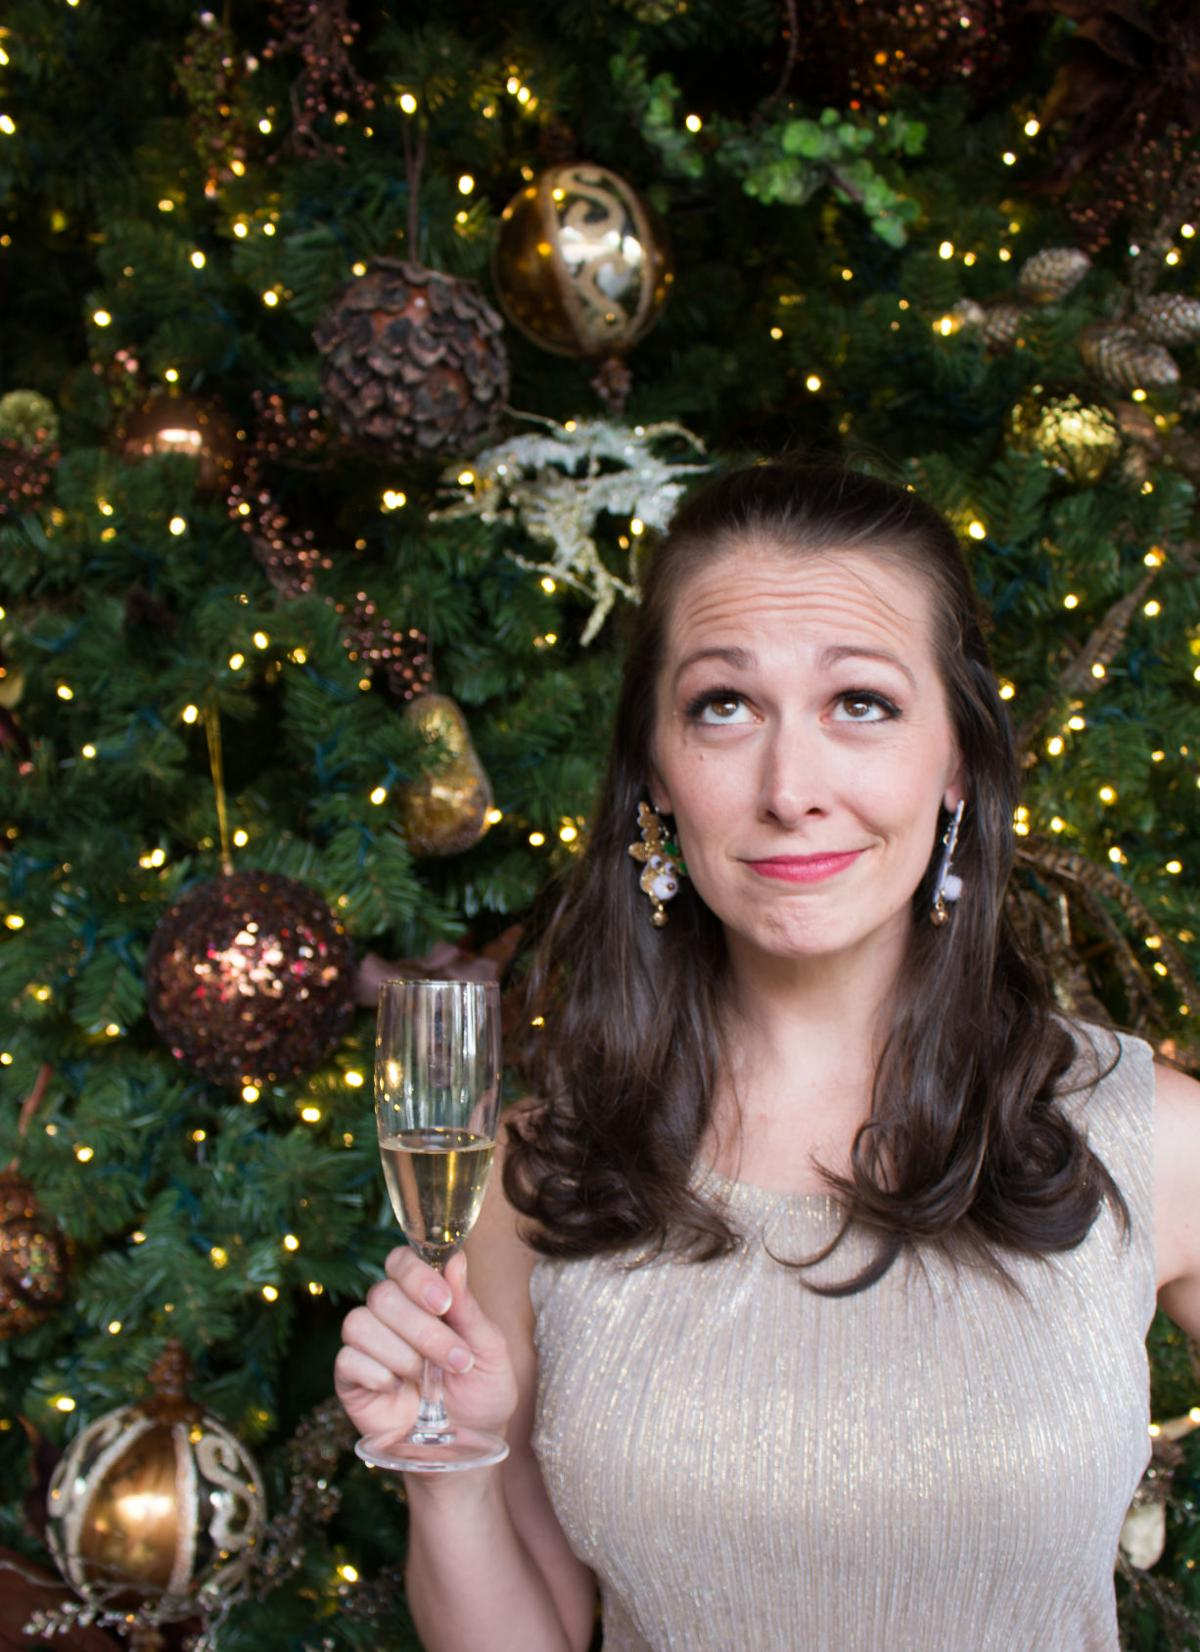 12 Dates Of Christmas.Enjoy Holiday Hilarity At The Twelve Dates Of Christmas